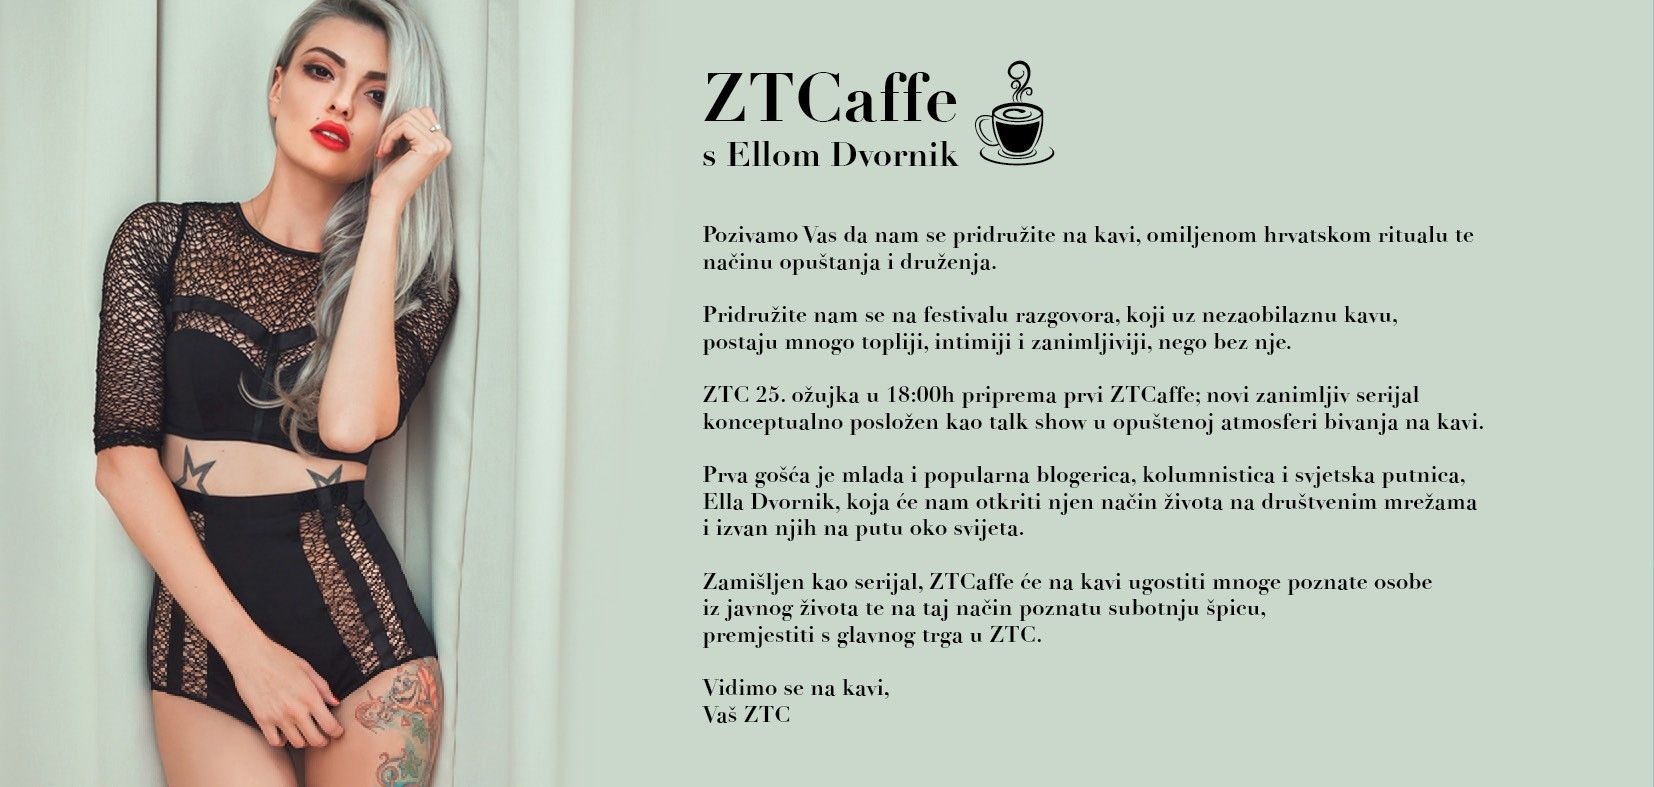 Prvi Proljetni Vikend U ZTC-u Uz Ellu Dvornik I Elite Model Look Casting!